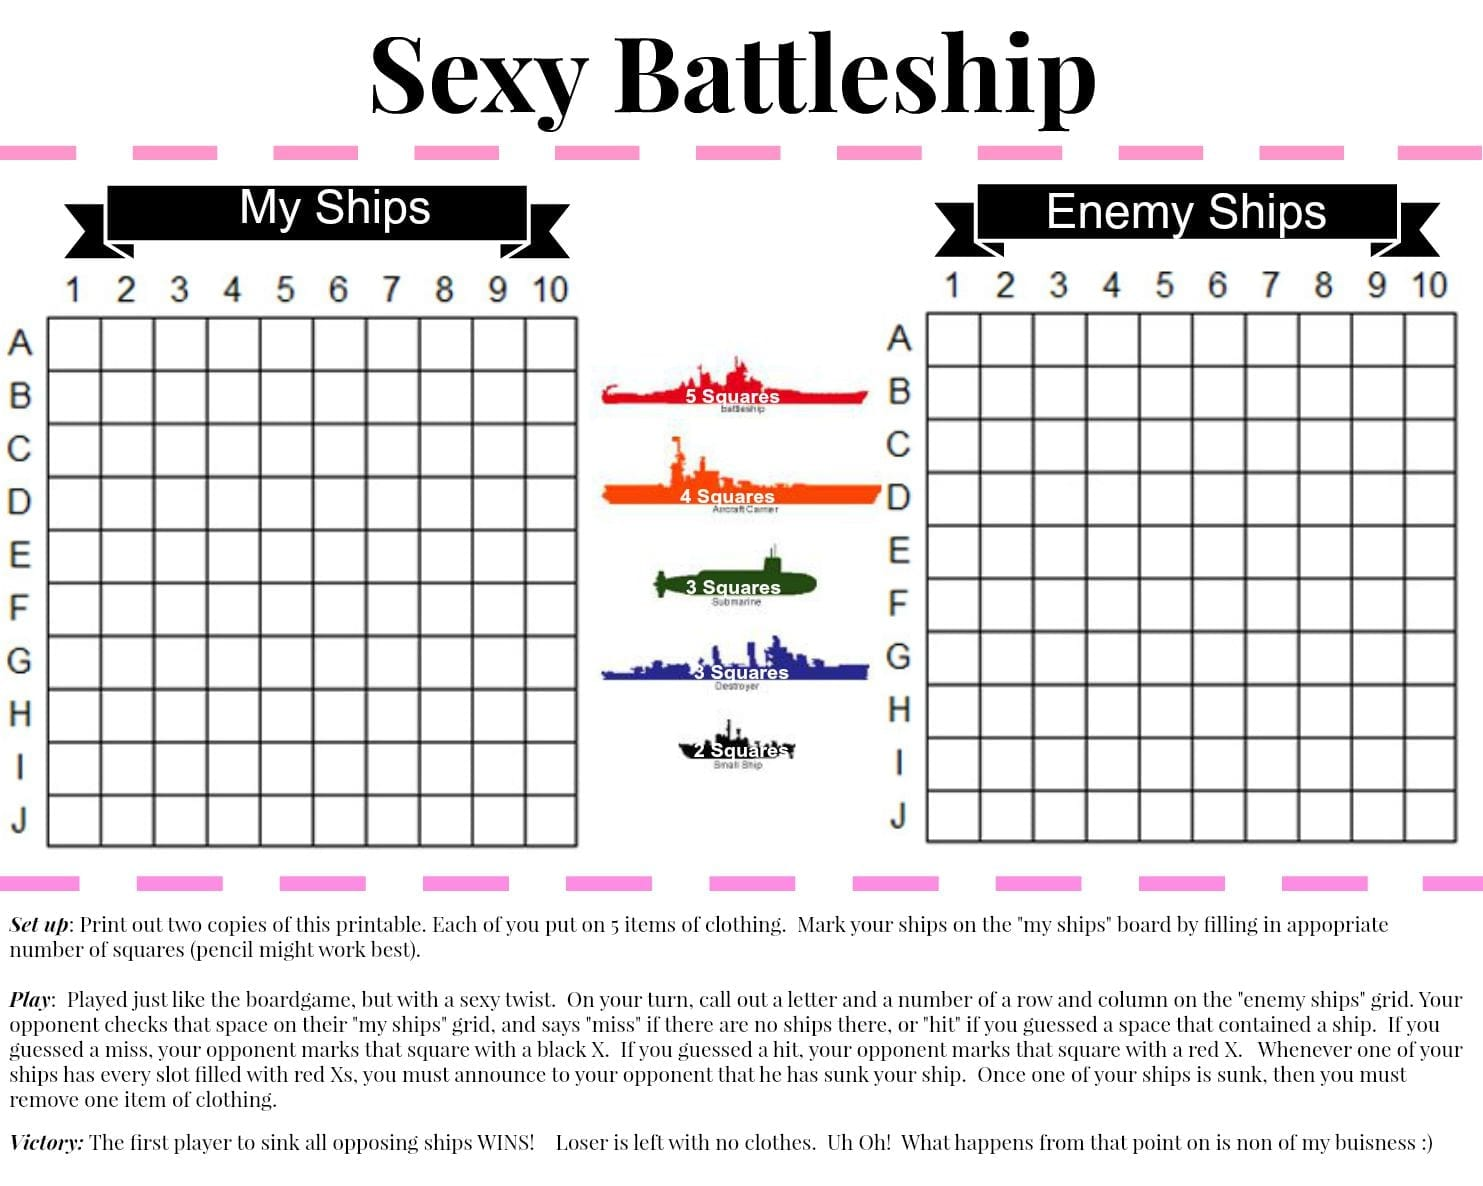 photo relating to Battleship Printable identify y battleship - Married and Bare - Connection Website